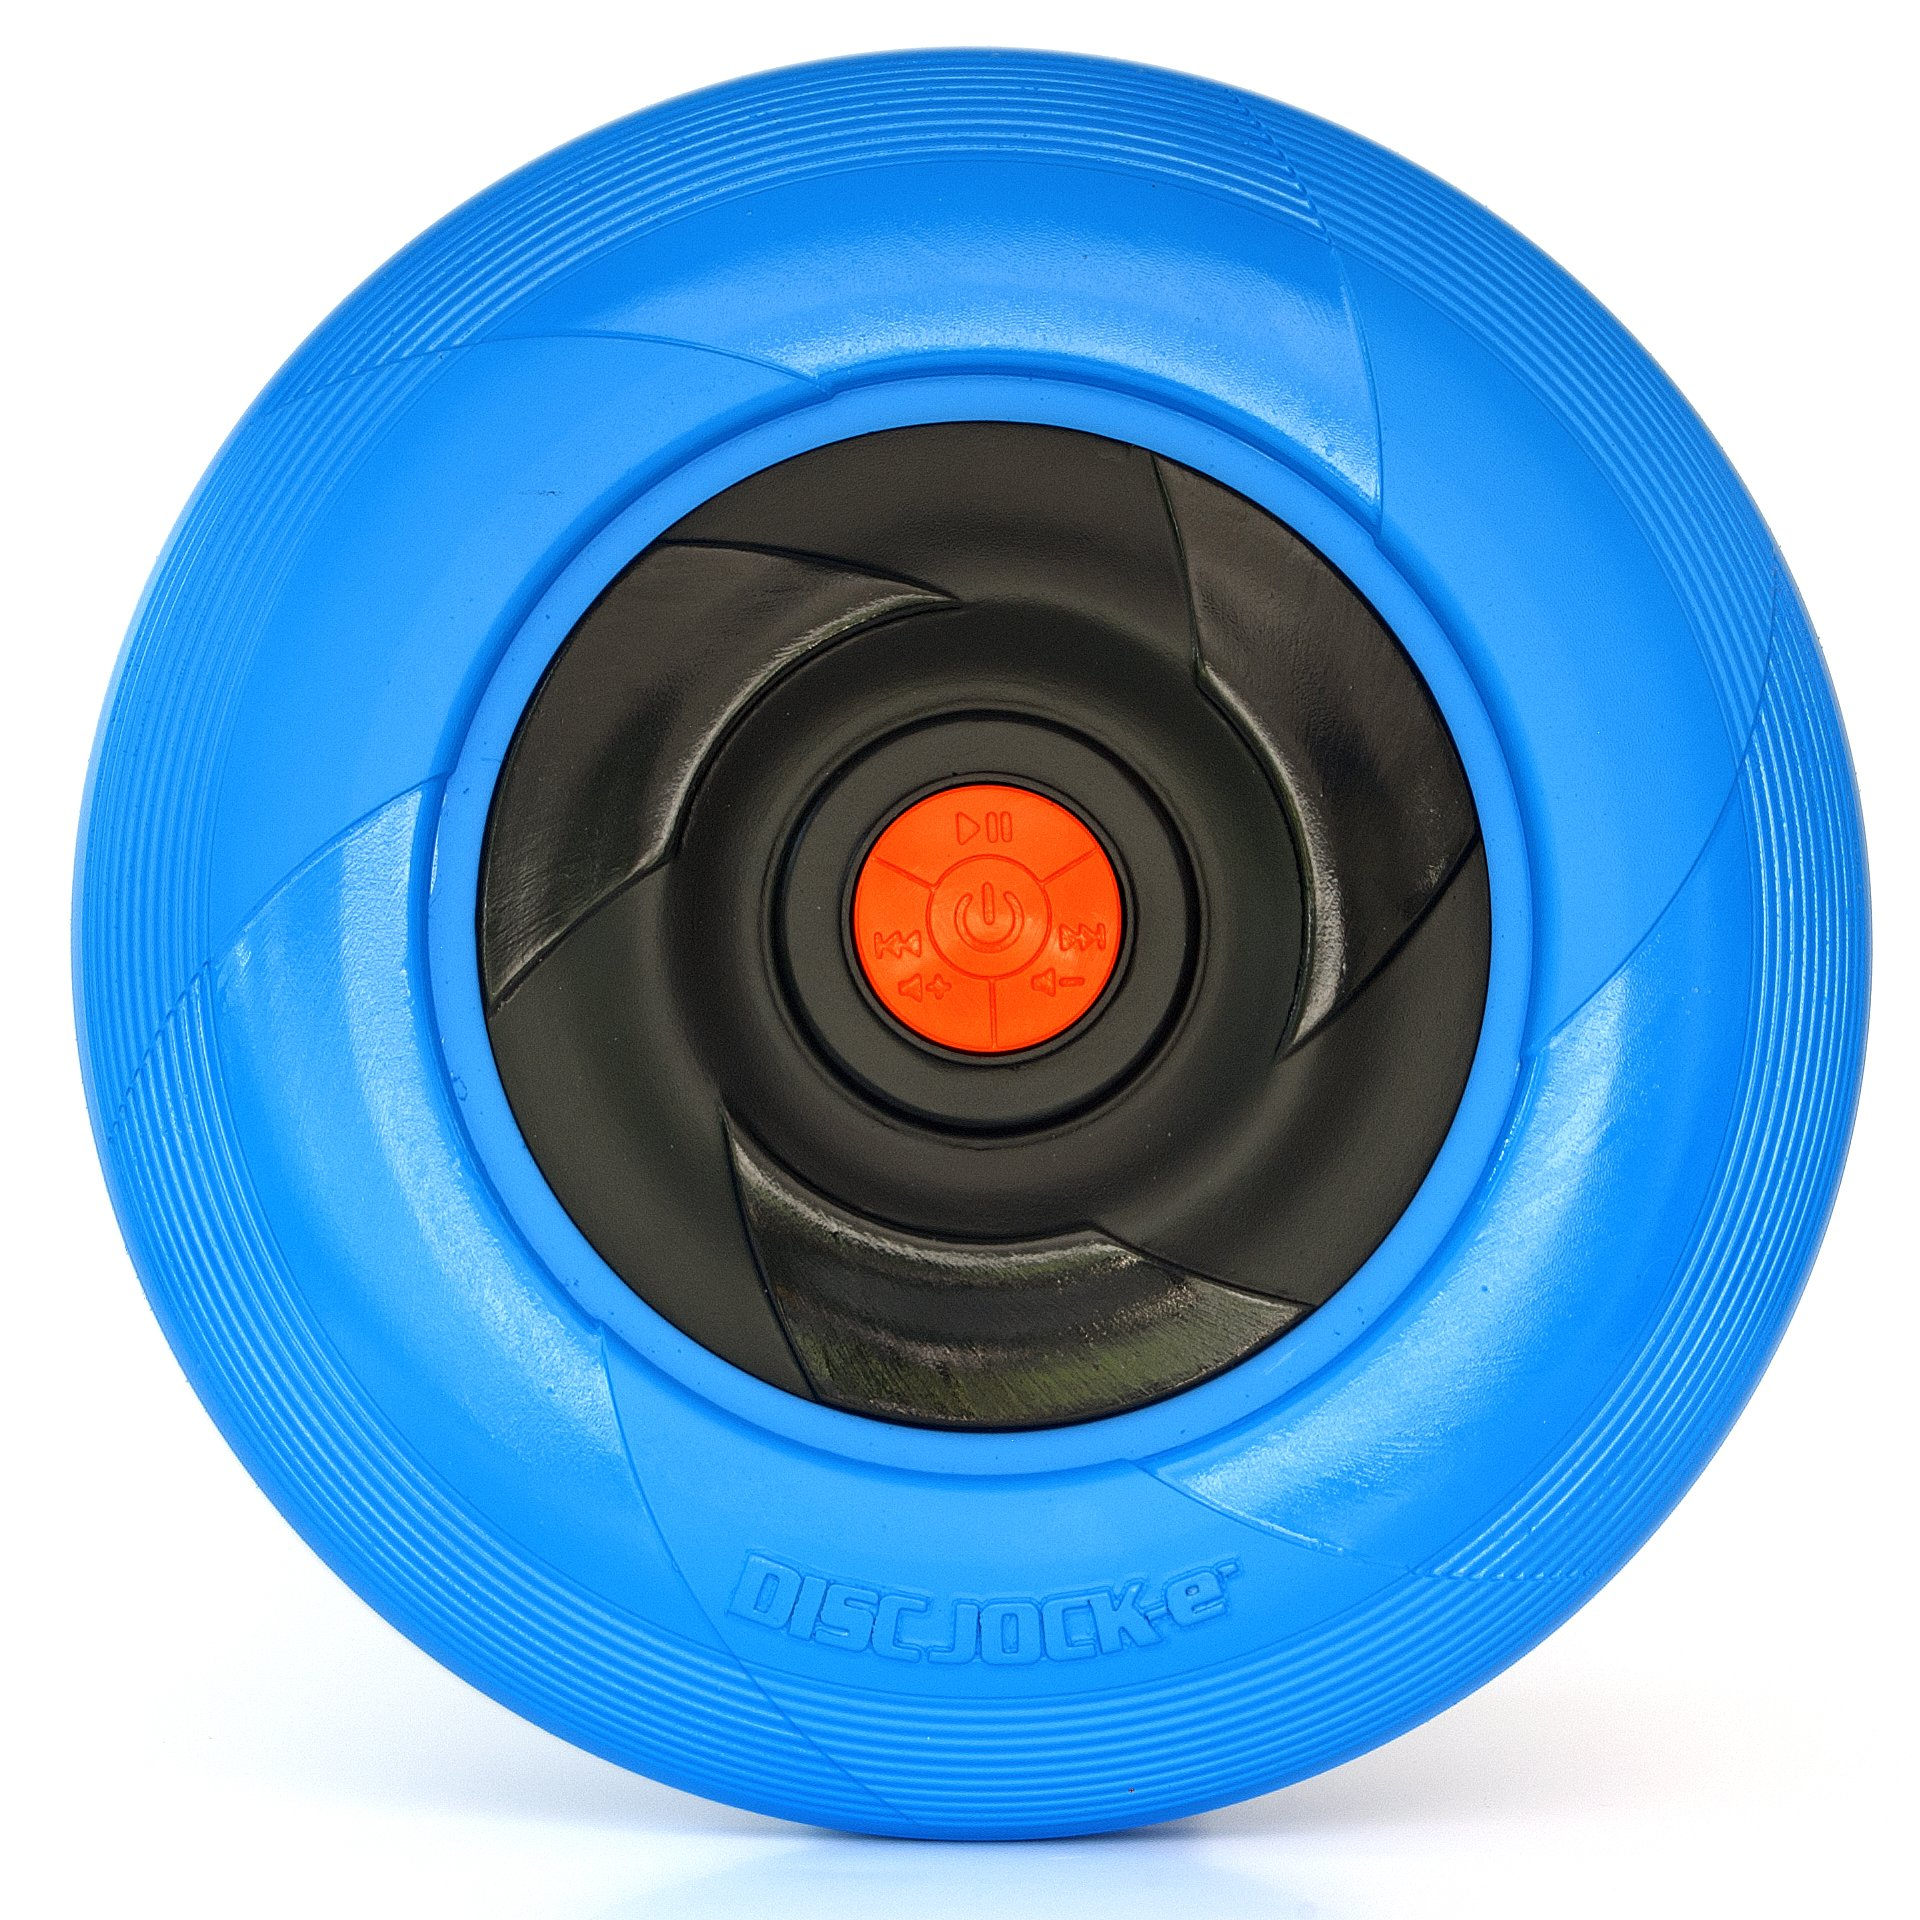 Tucker Toys Disc Jock-E -Bluetooth Speaker- The Flying Disc.